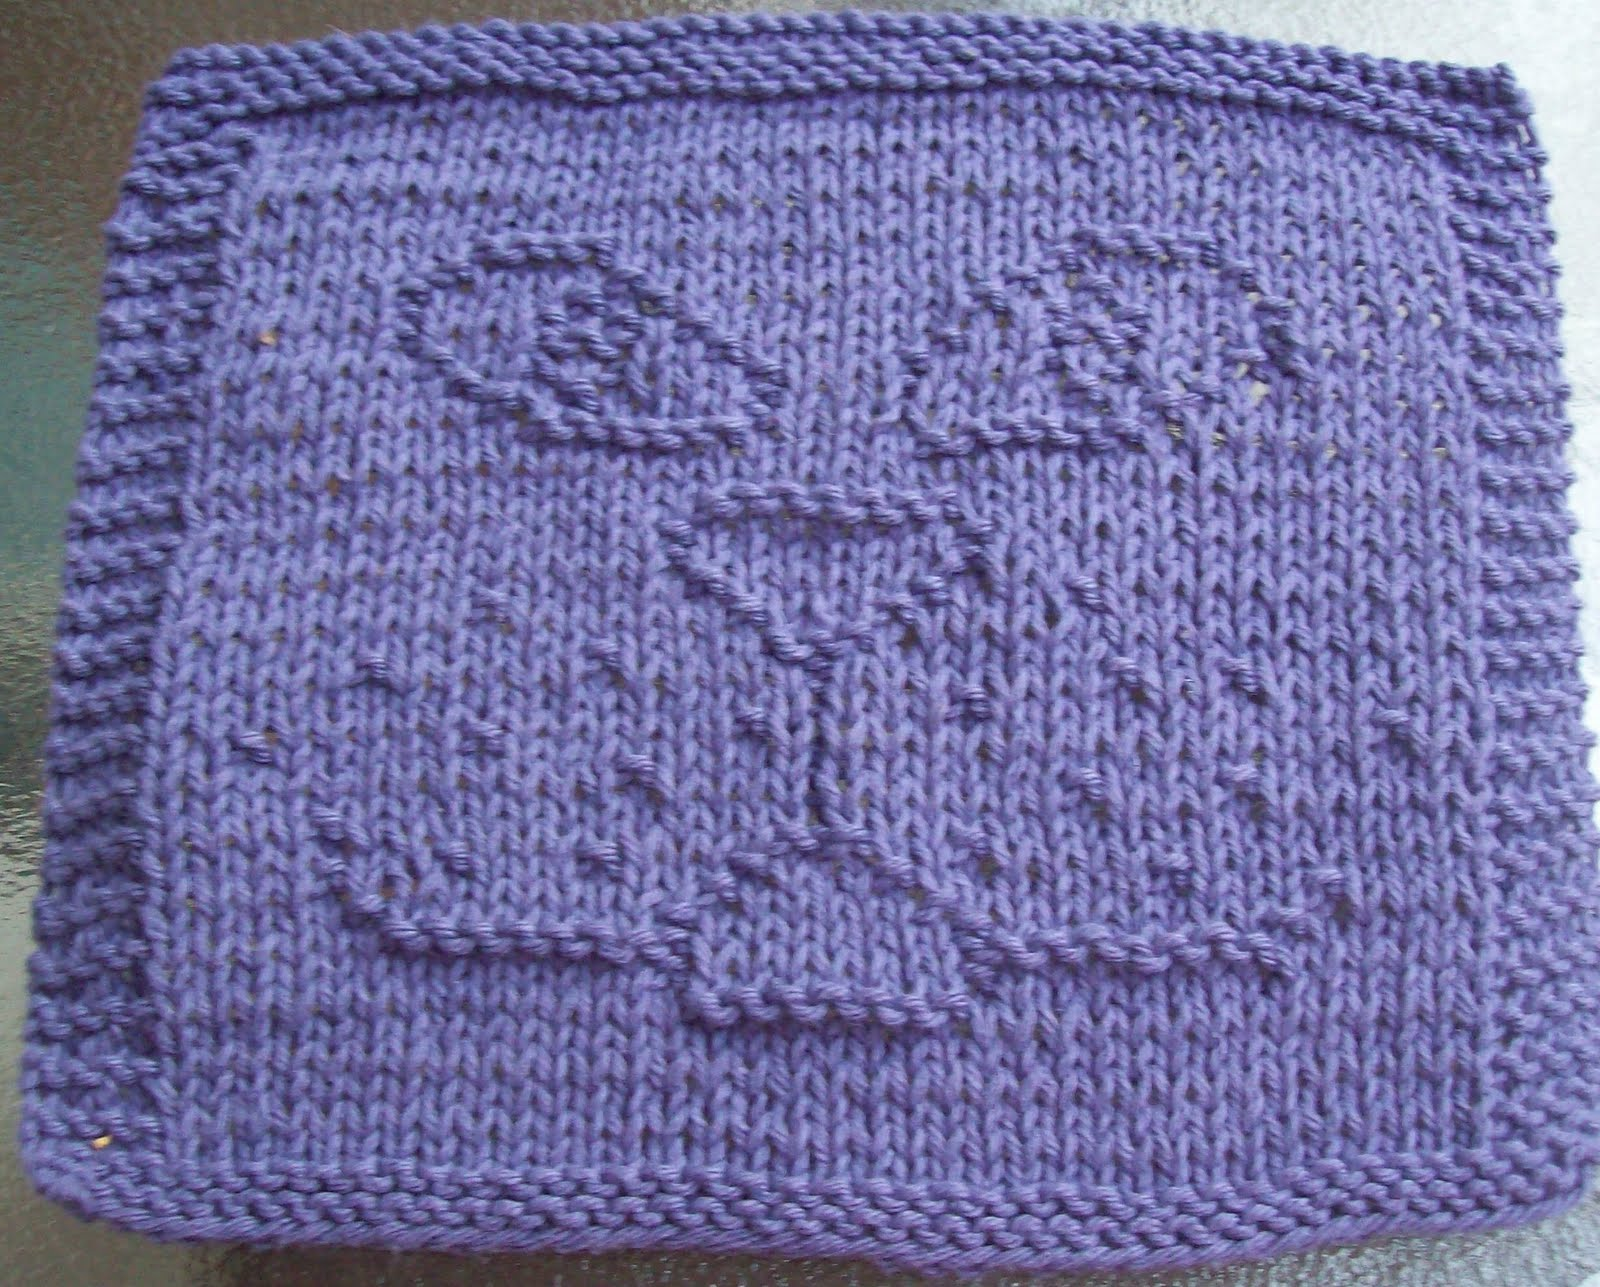 Knit Dishcloth Pattern Free : Knitting Dishcloth Patterns Fish